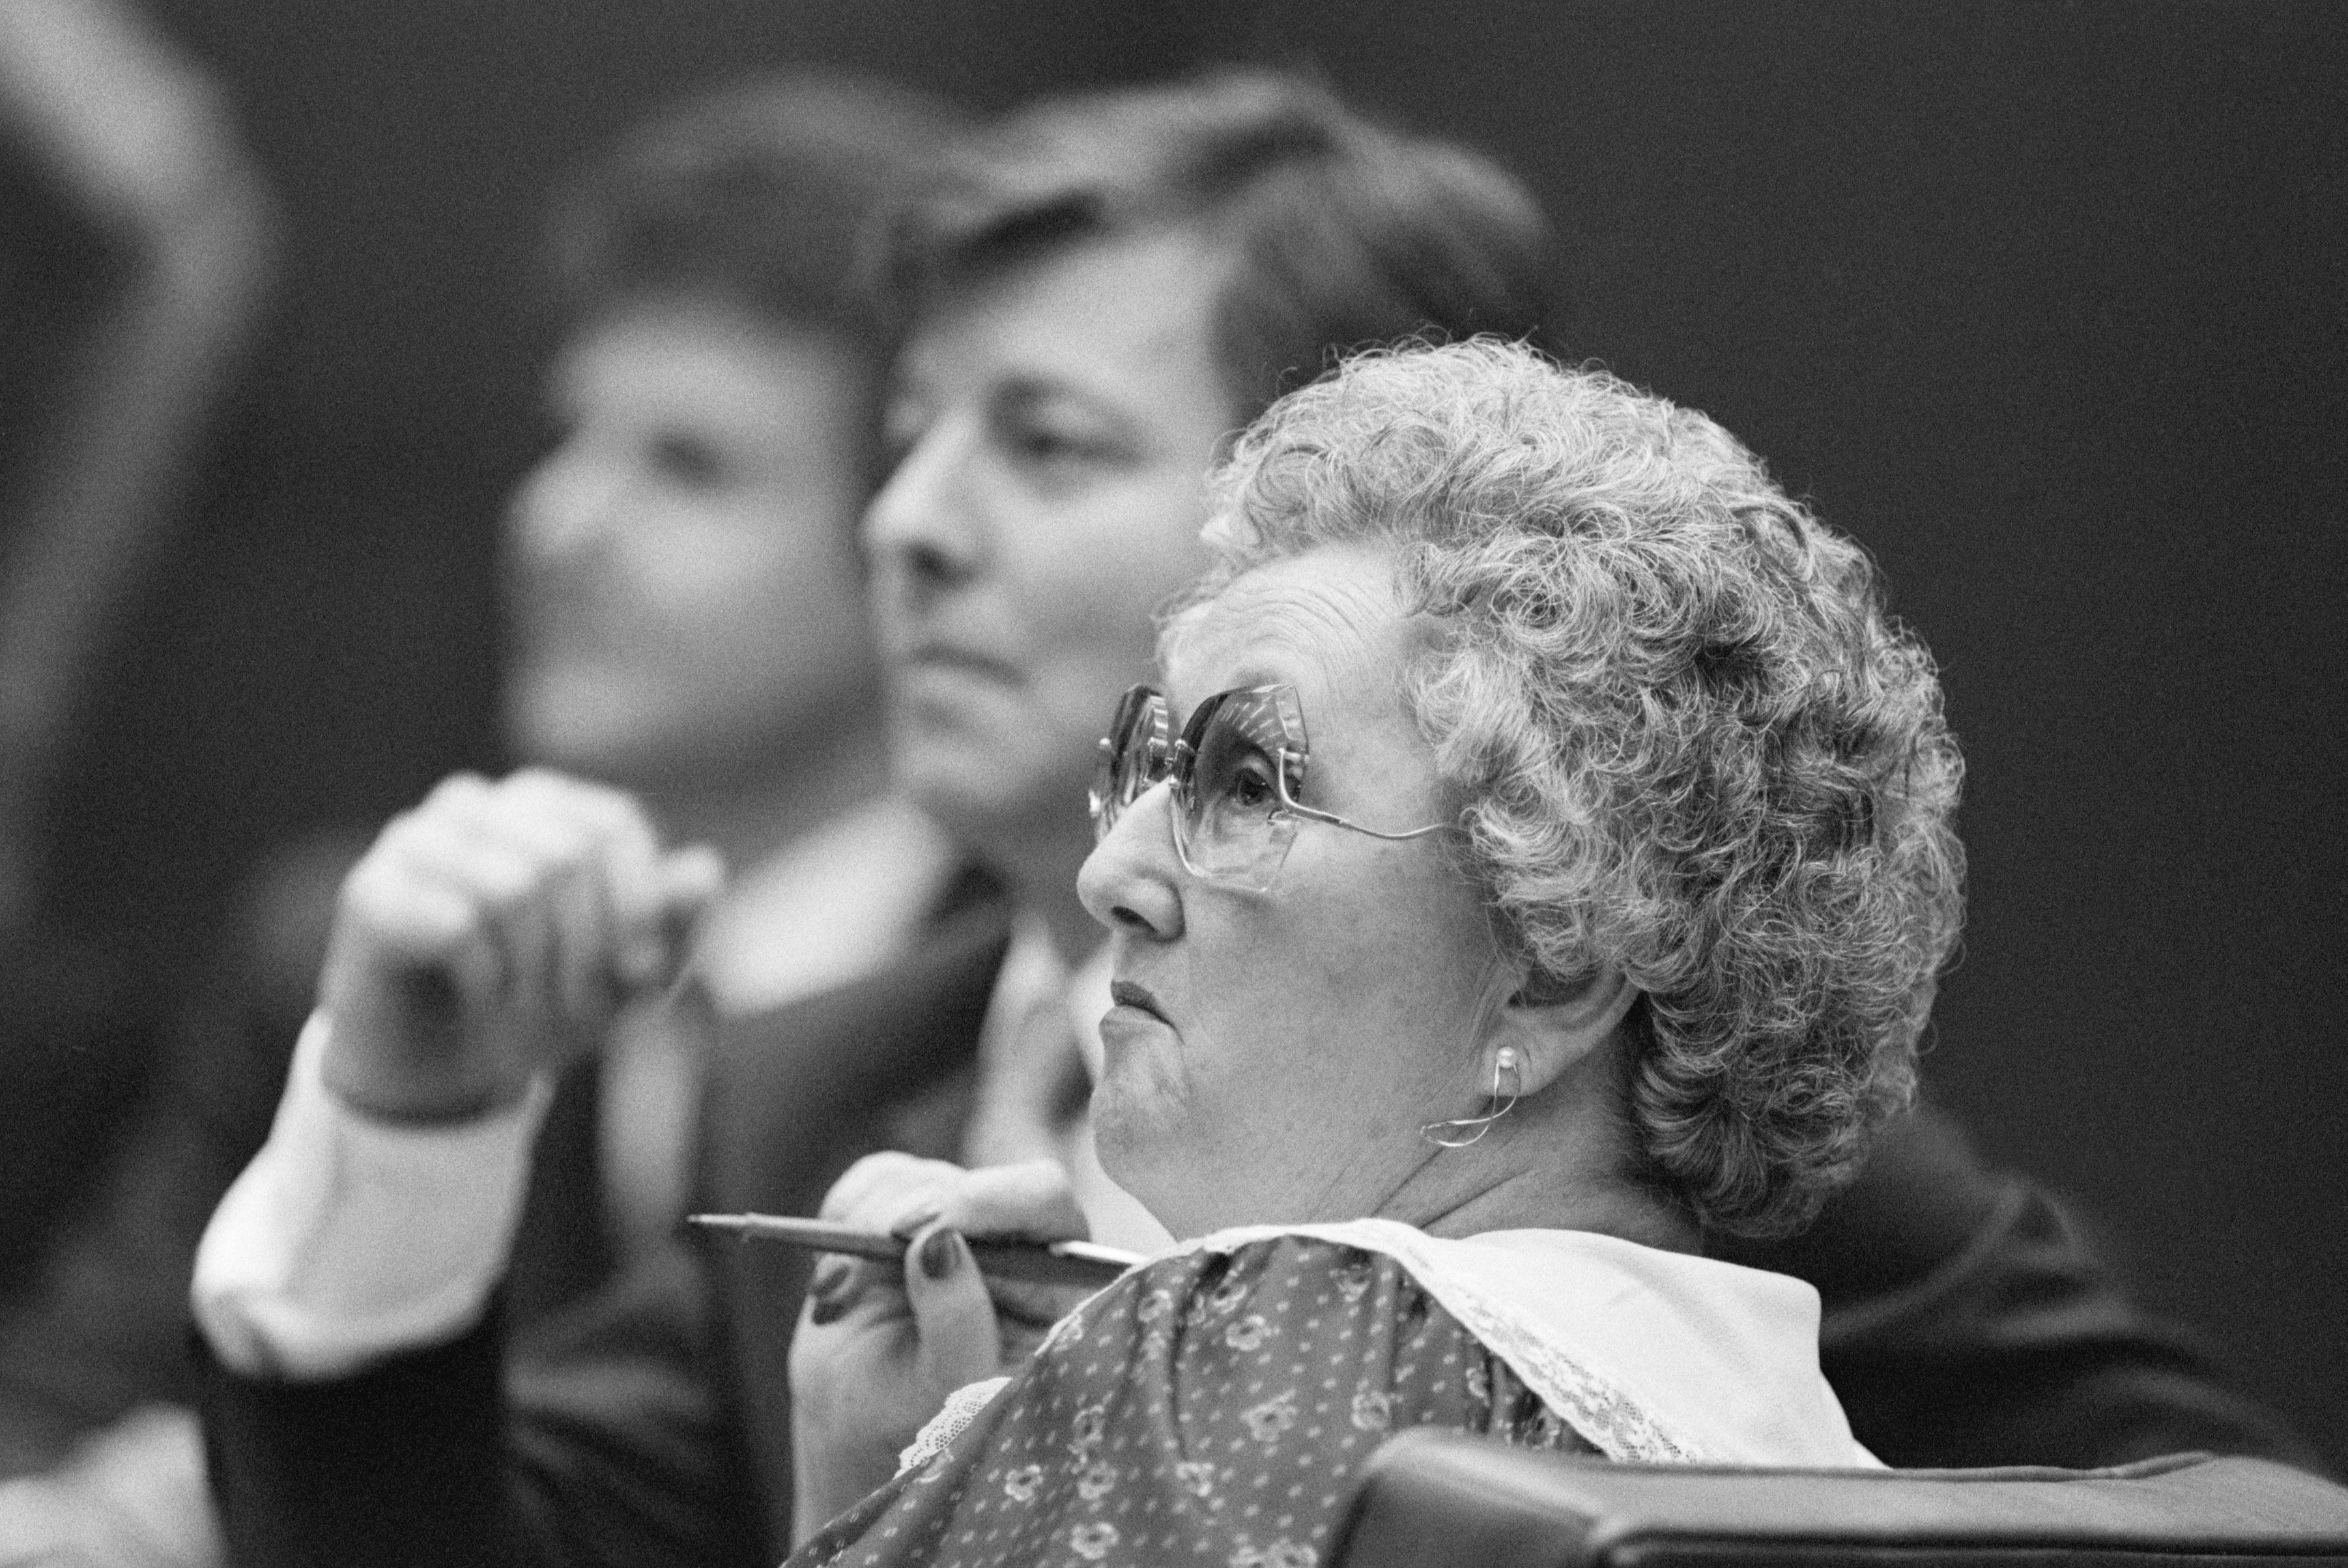 Peggy McMartin Buckey and her son Ray Buckey on trial in 1987.